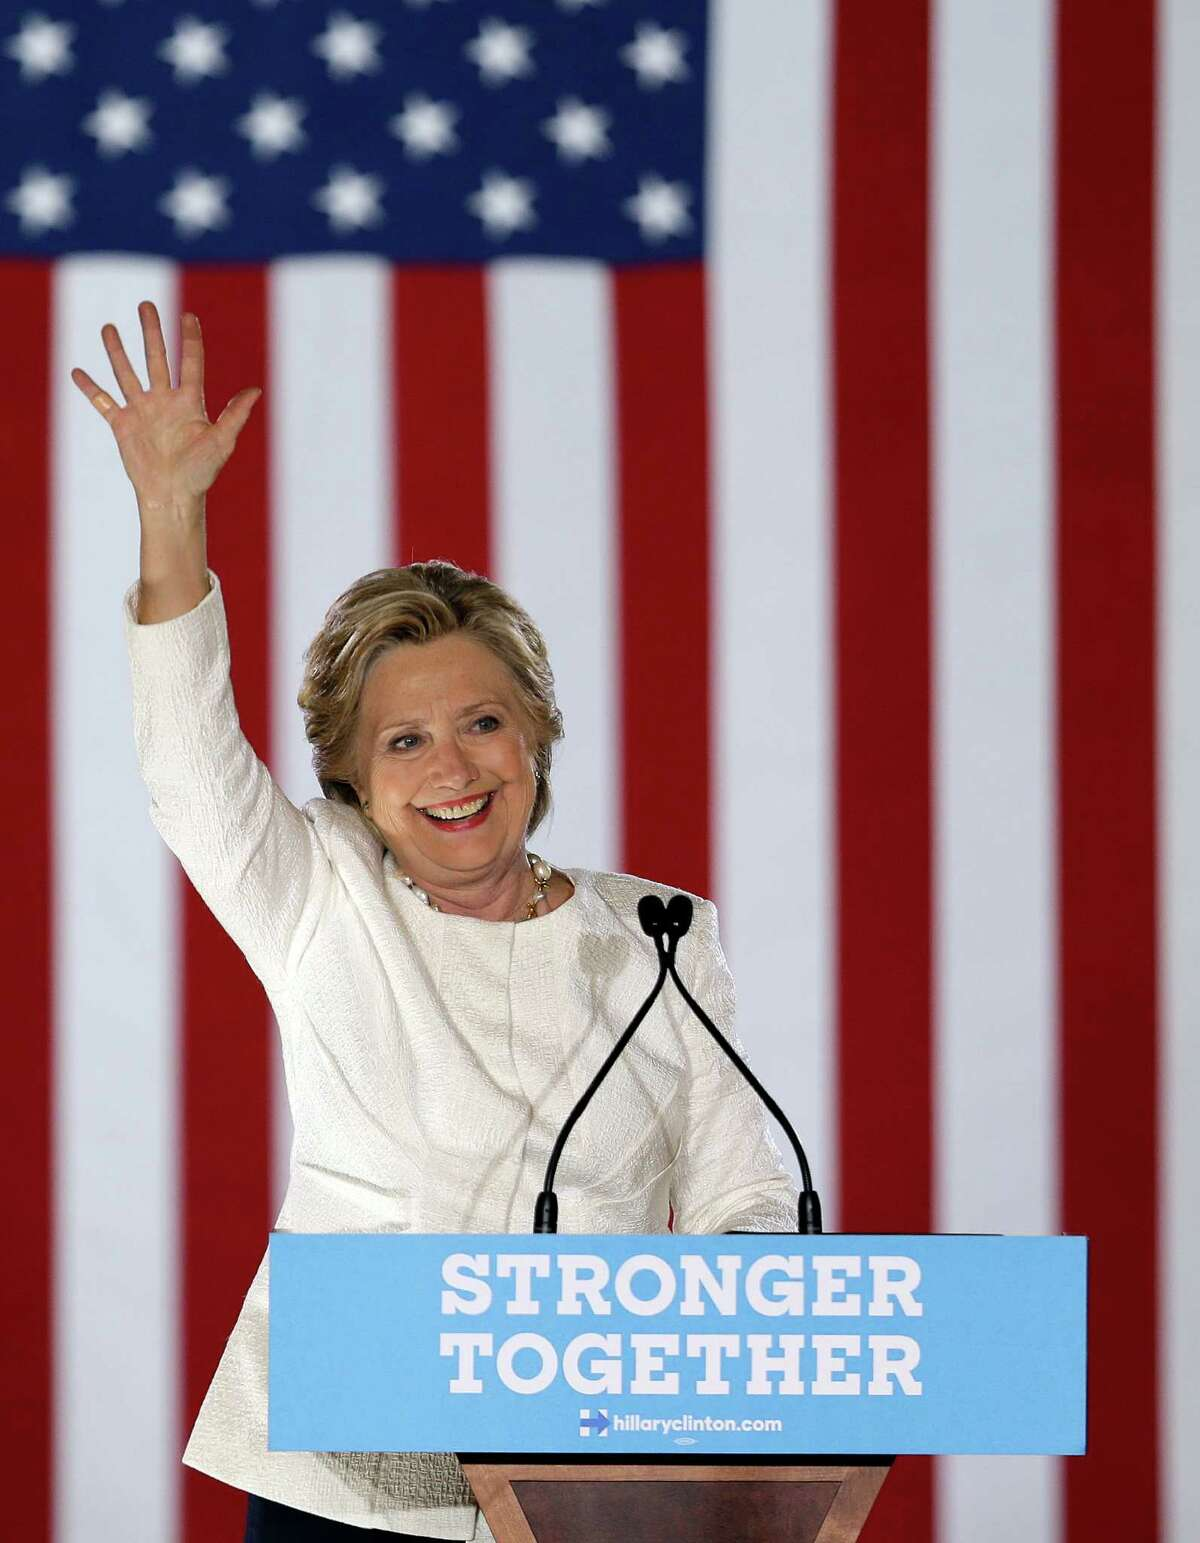 Democratic presidential candidate Hillary Clinton waves to supporters before leaving a campaign event, Tuesday, Nov. 1, 2016, in Sanford, Fla. (AP Photo/John Raoux) ORG XMIT: FLJR108